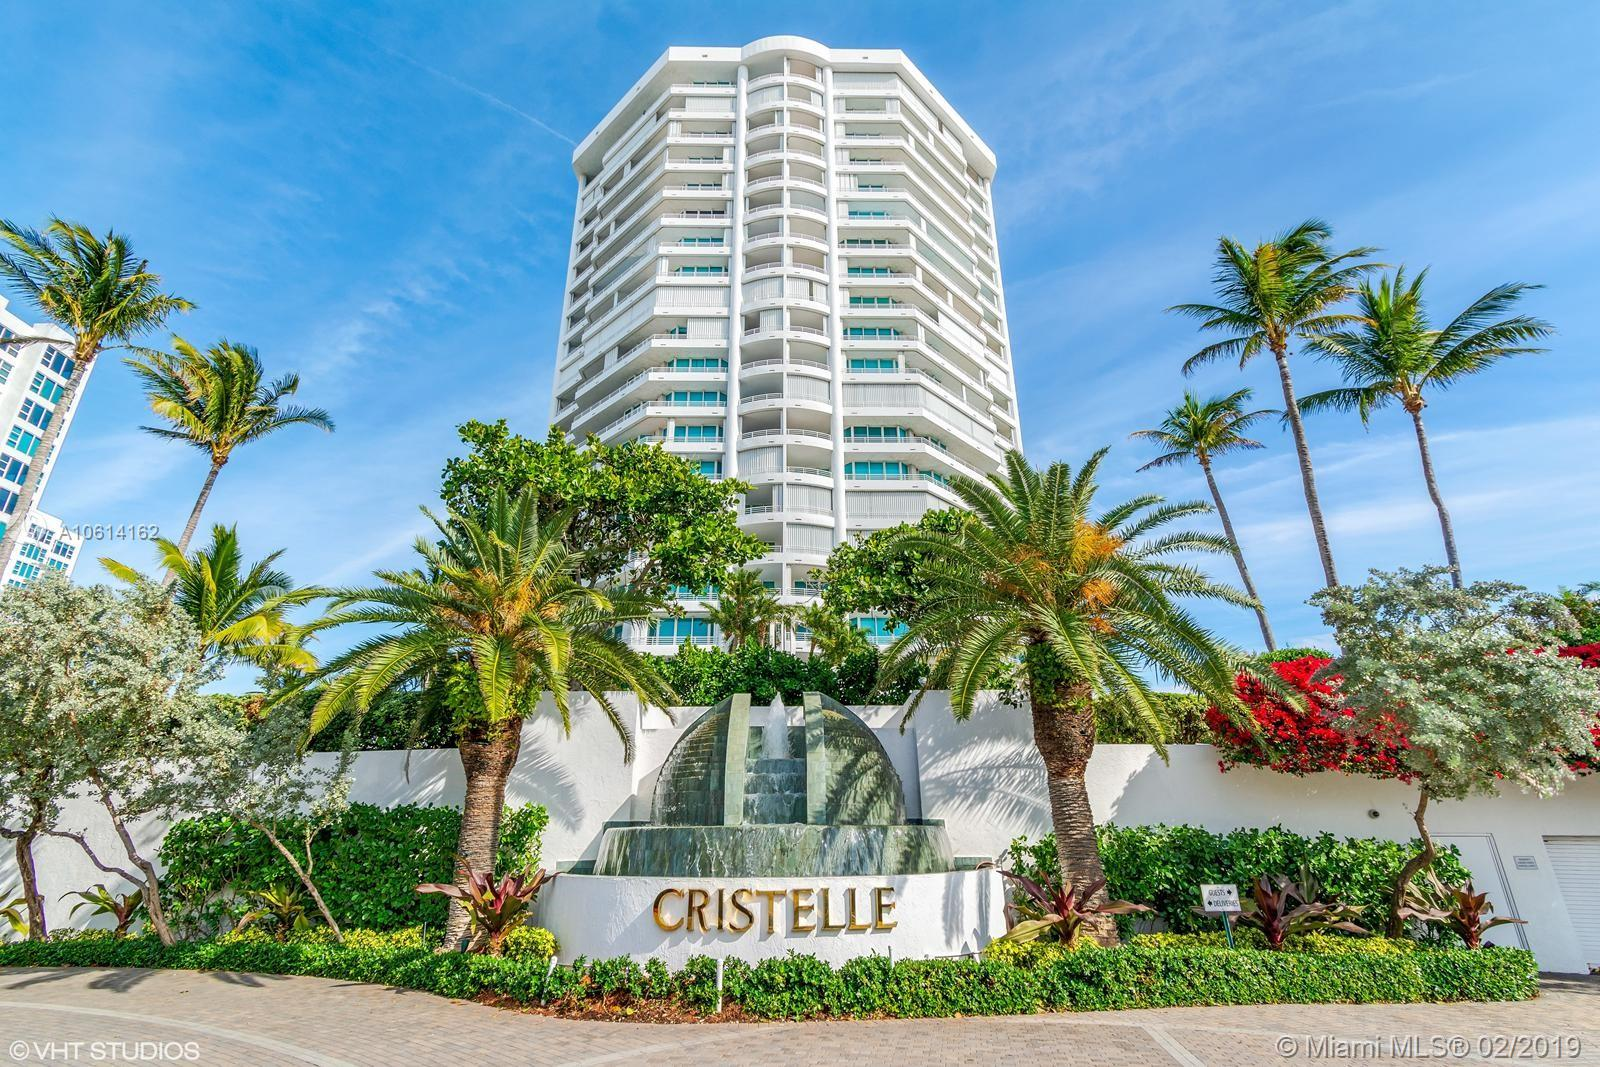 image #1 of property, Cristelle A Condo, Unit 18A